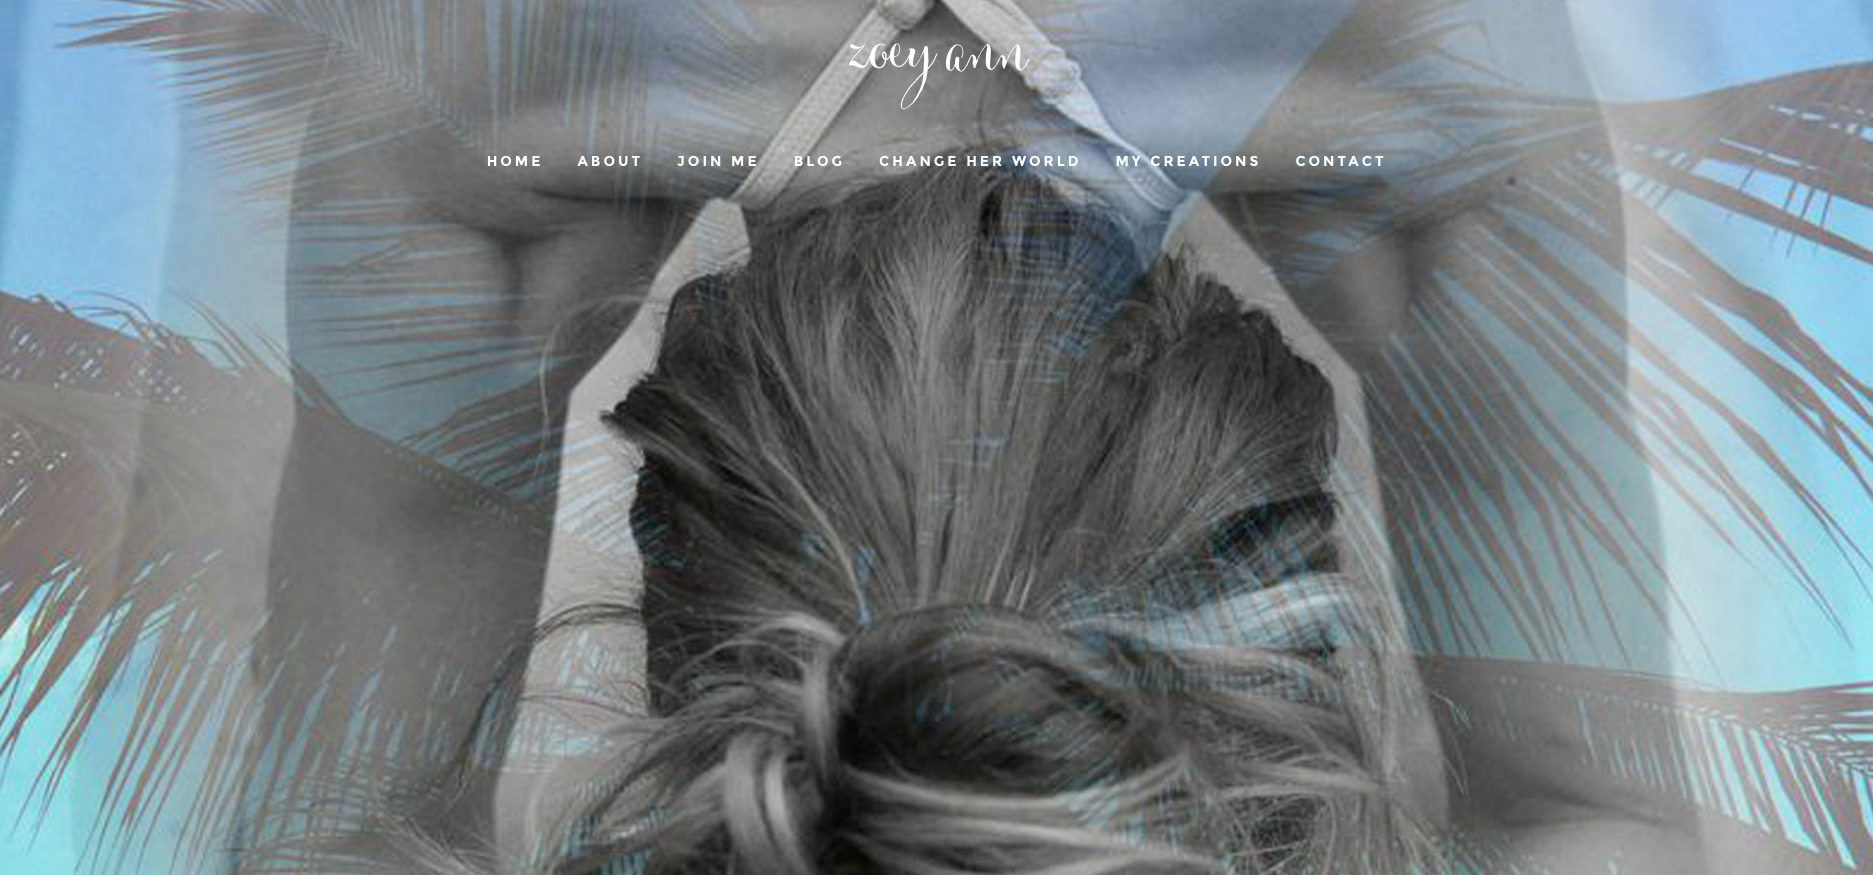 Website design by Sea Salt Web Whistler for Zoey Ann yoga